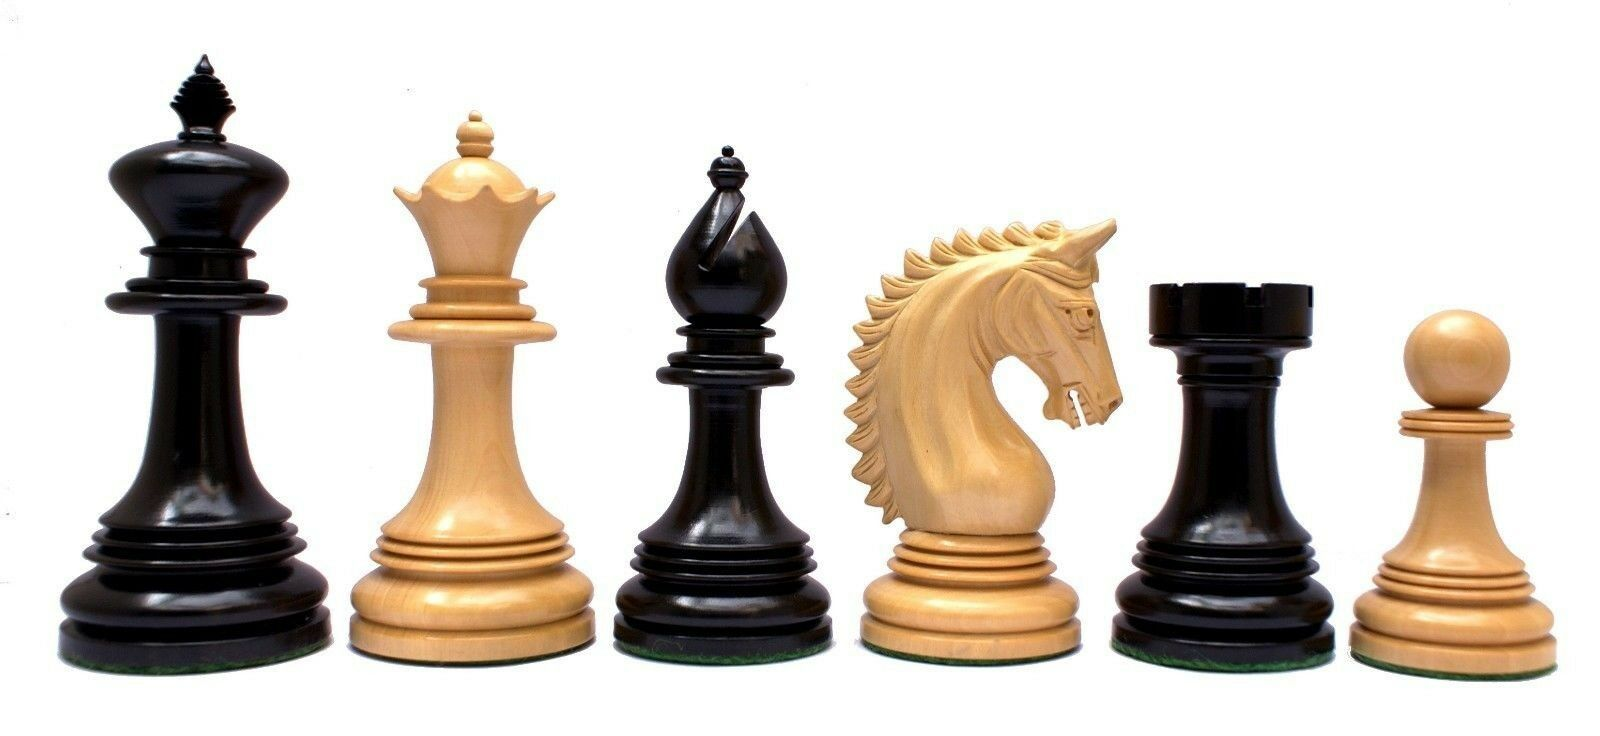 Miletus Series Staunton 4  Chess Pieces in Genuine Genuine Genuine Ebony Wood and Box wood 0a40f3